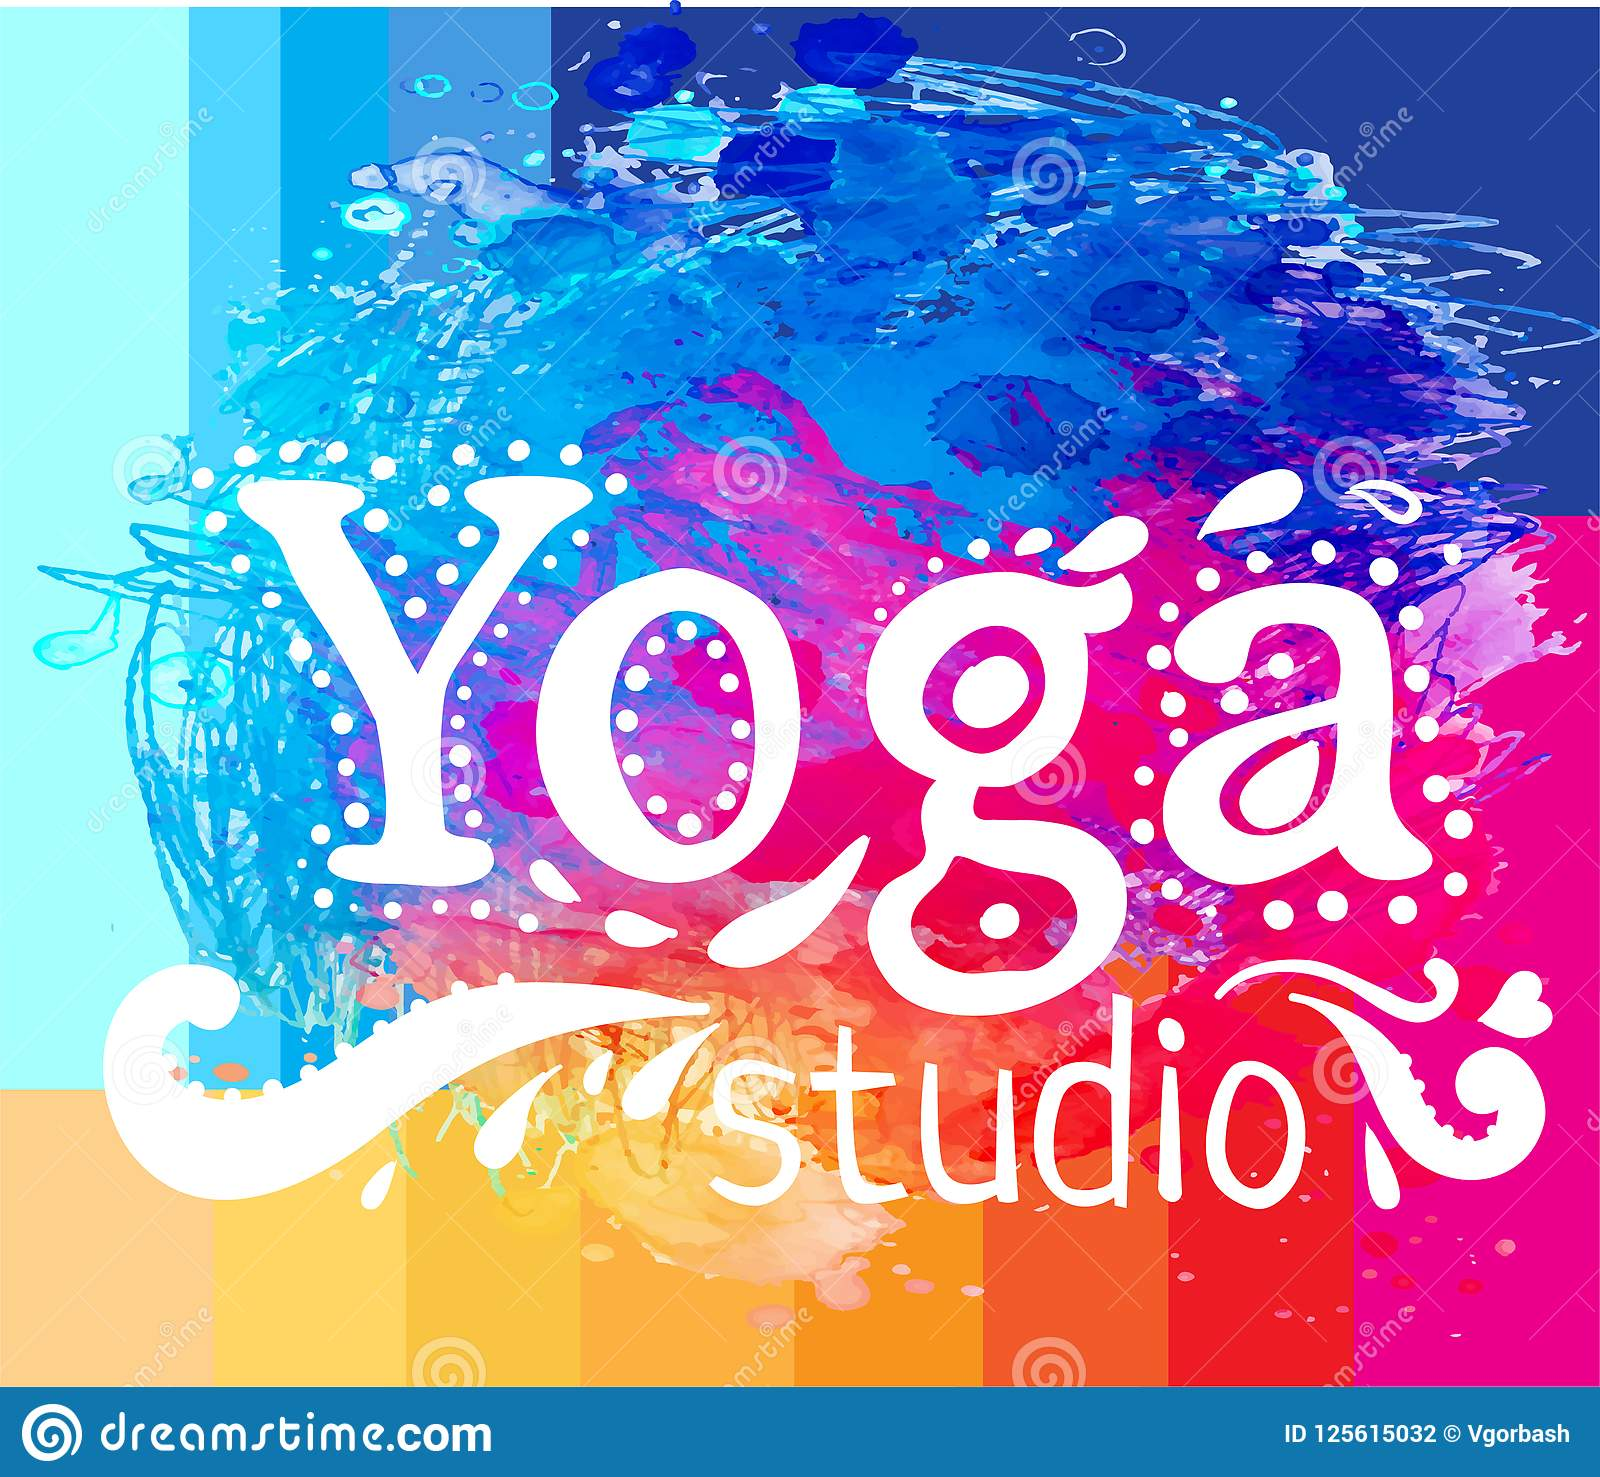 Yoga Studio Design Template Over Colorful Watercolor Background Stock Vector Illustration Of Sign Meditation 125615032